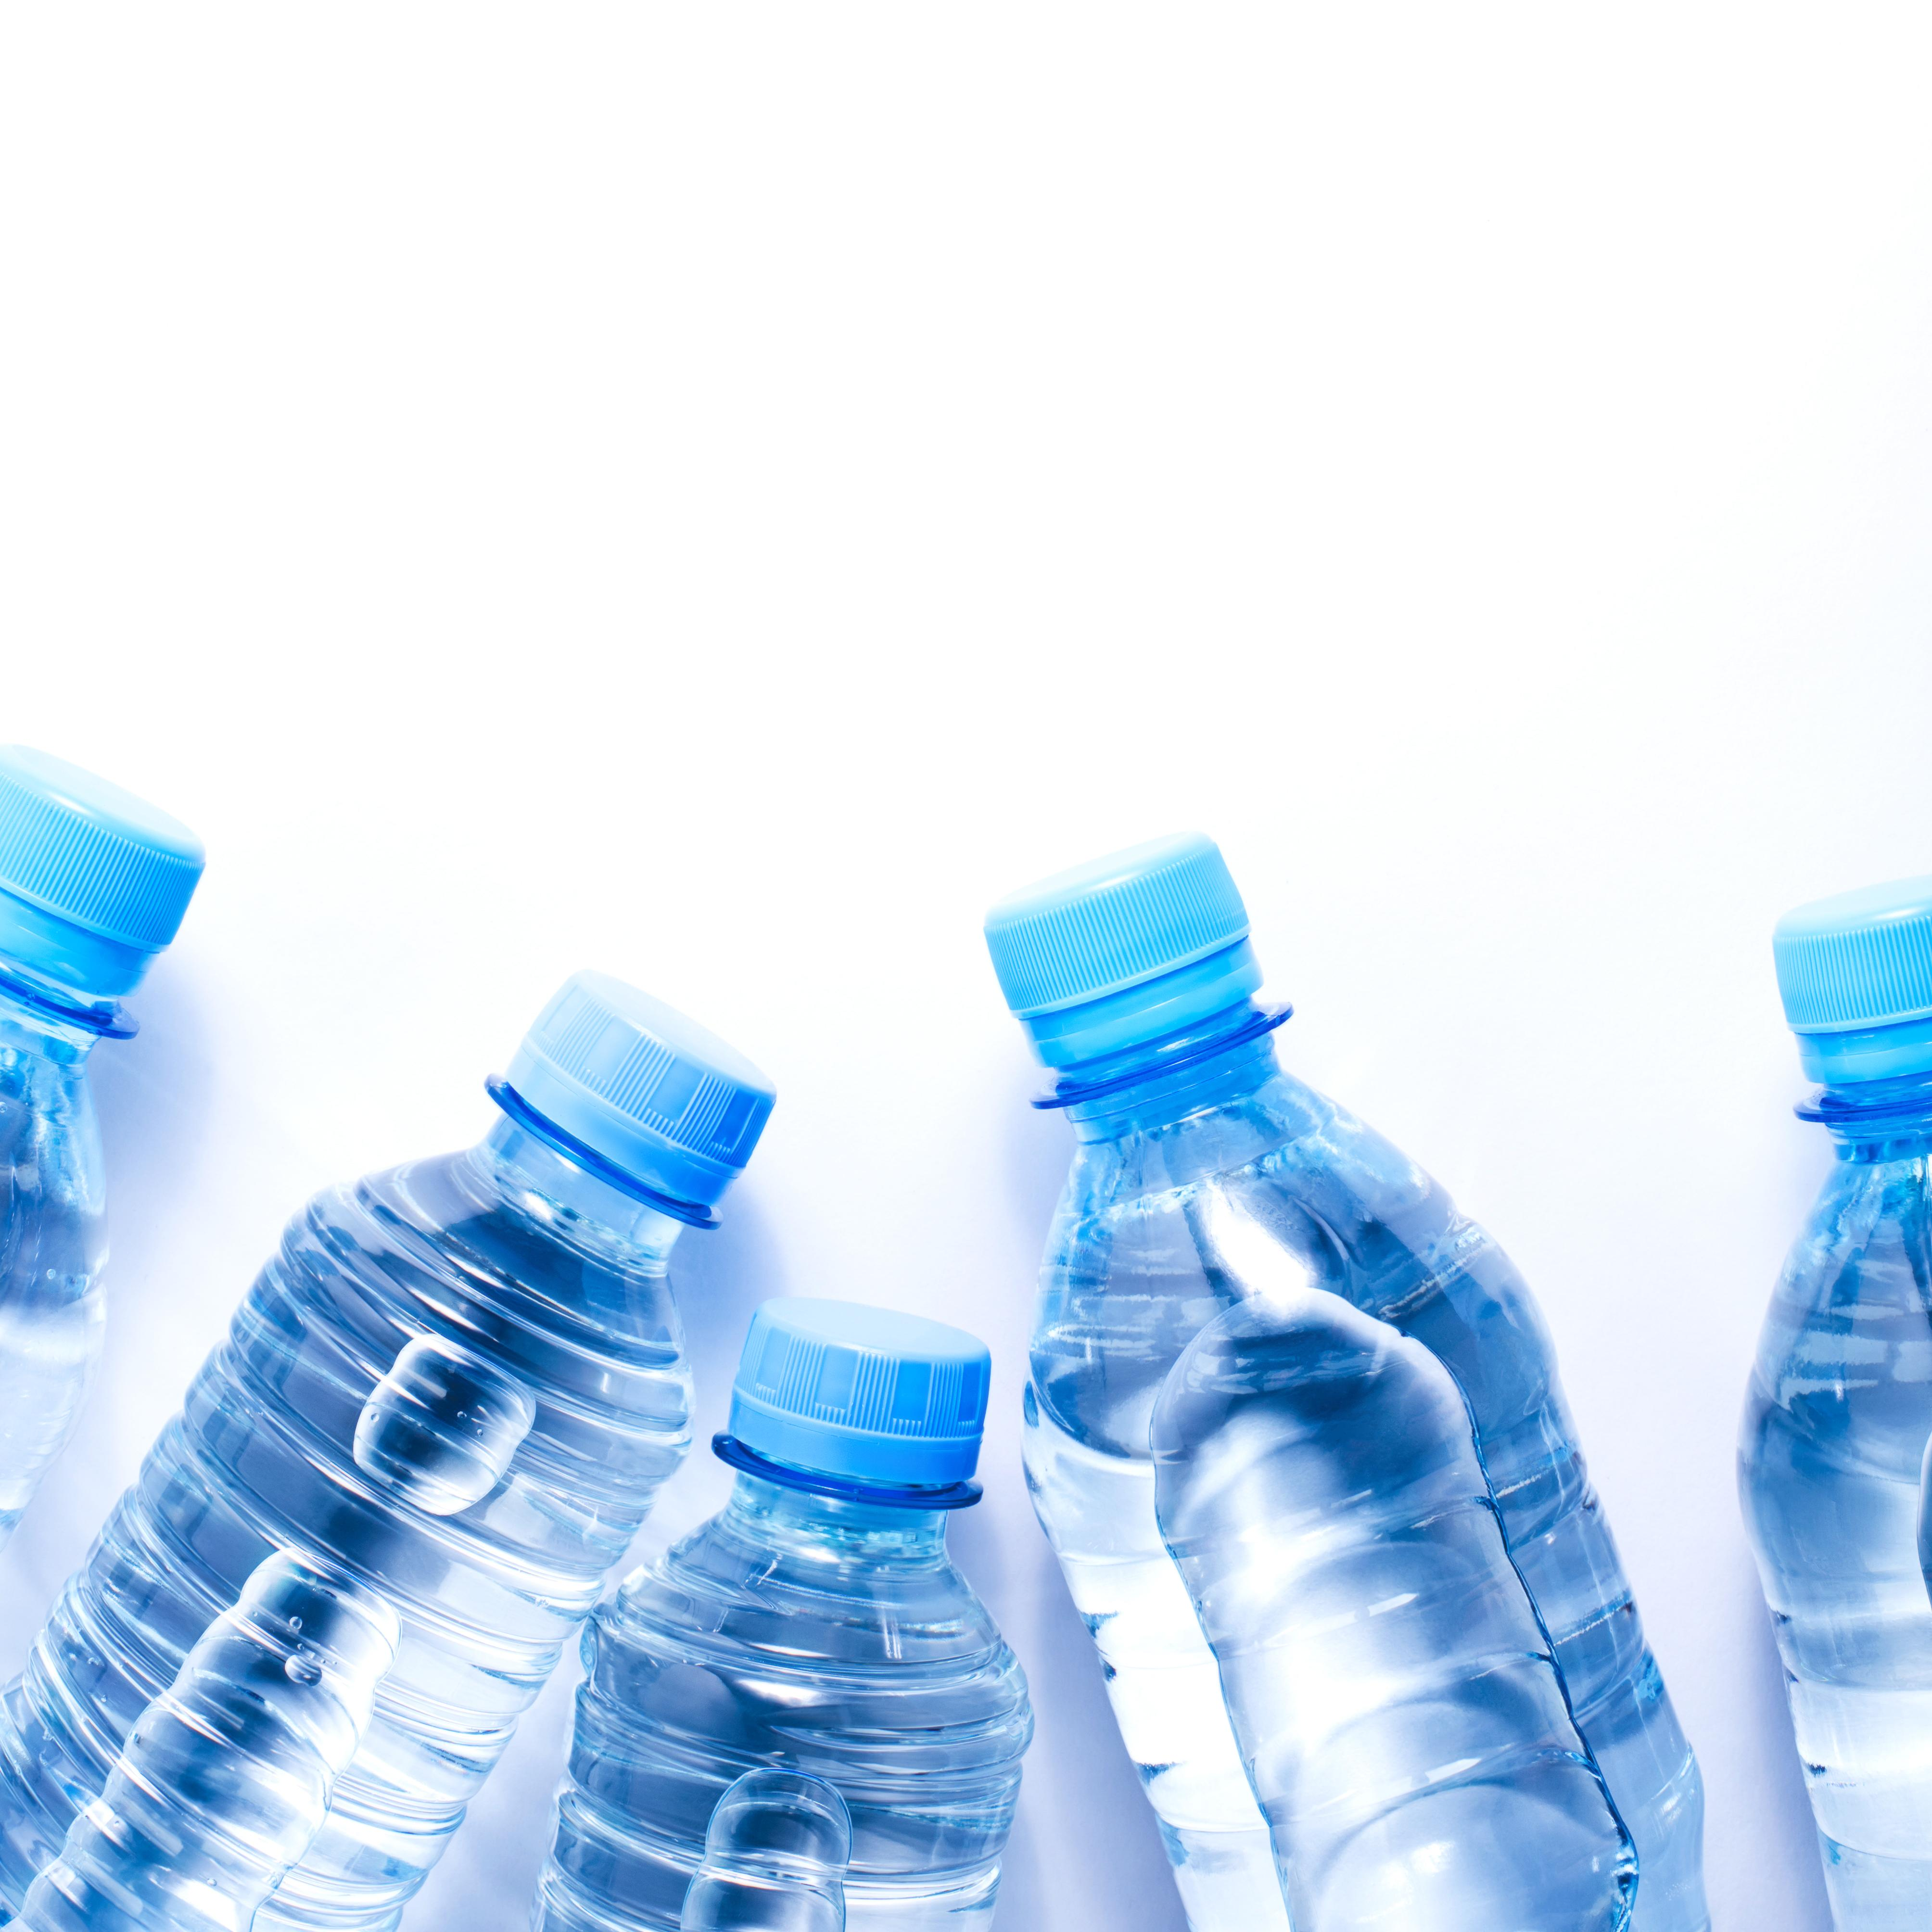 High levels of arsenic found in bottled water sold at Walmart, Target, and  Whole Foods, study says